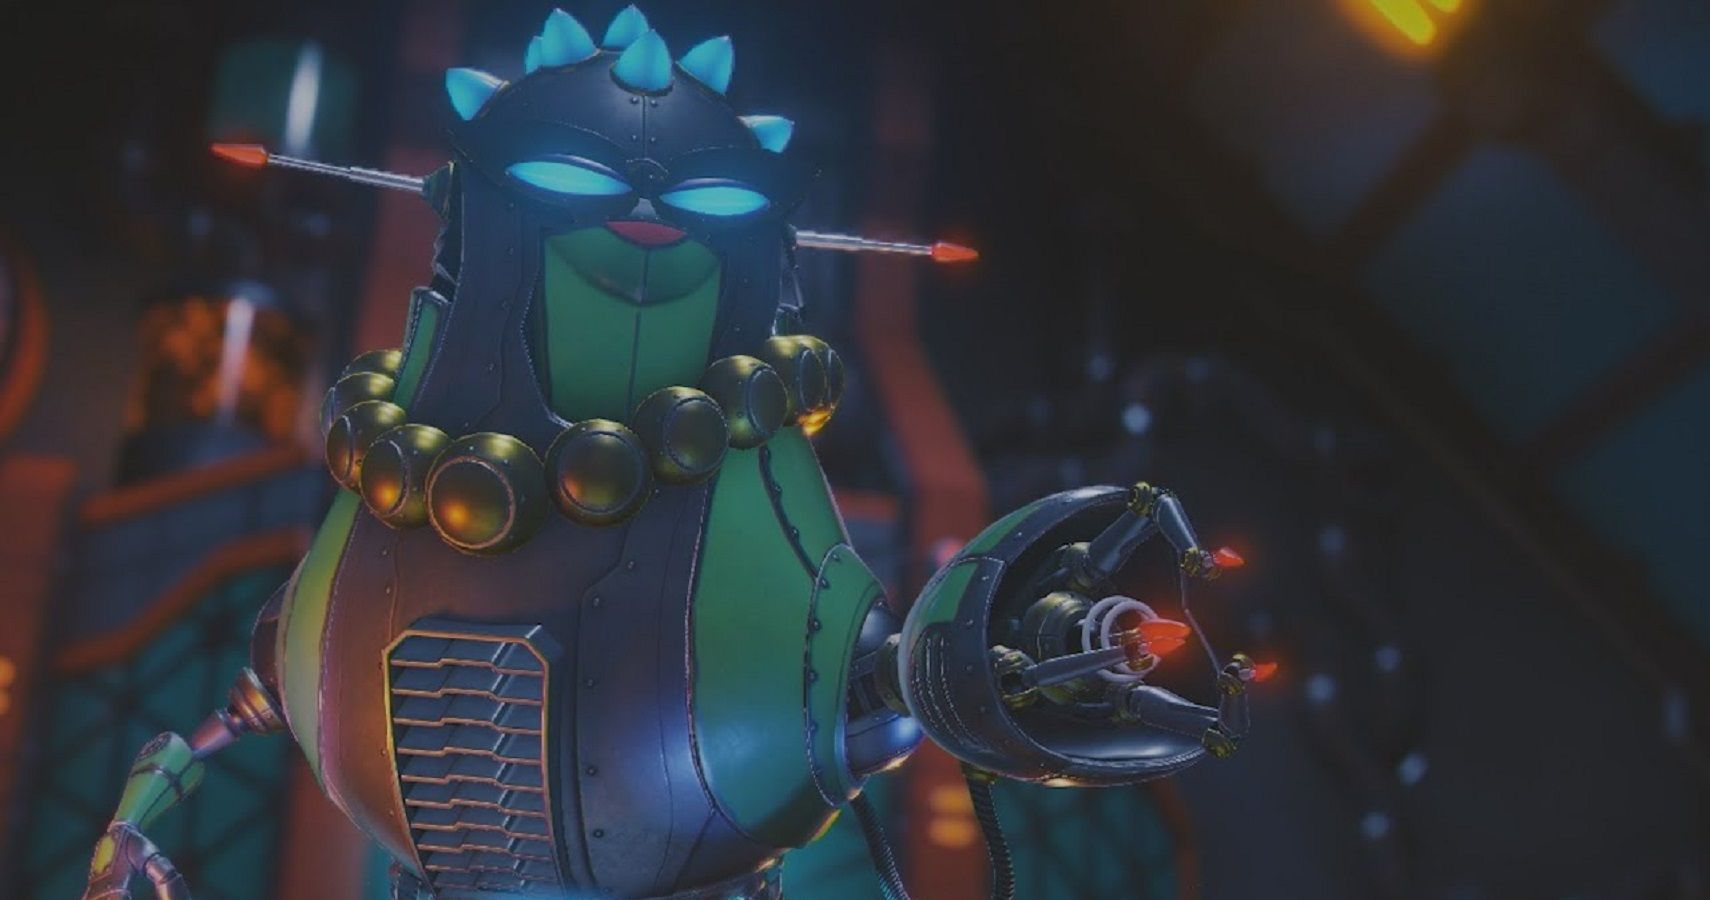 I Love That Ratchet & Clank: Rift Apart Will Be The First In The Series To Pass The Bechdel Test